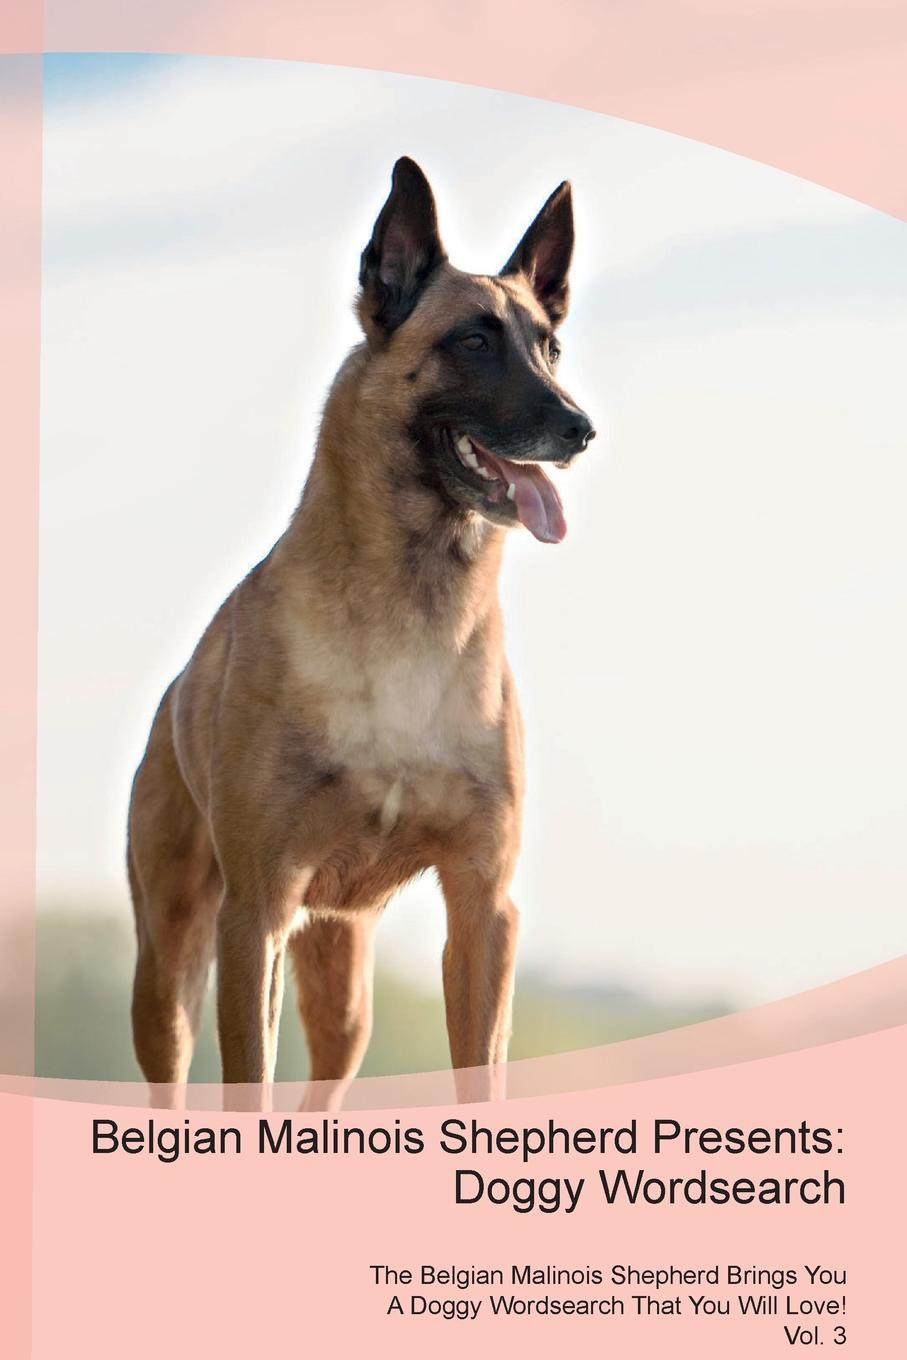 Doggy Puzzles Belgian Malinois Shepherd Presents. Wordsearch The Brings You A That Will Love! Vol. 3